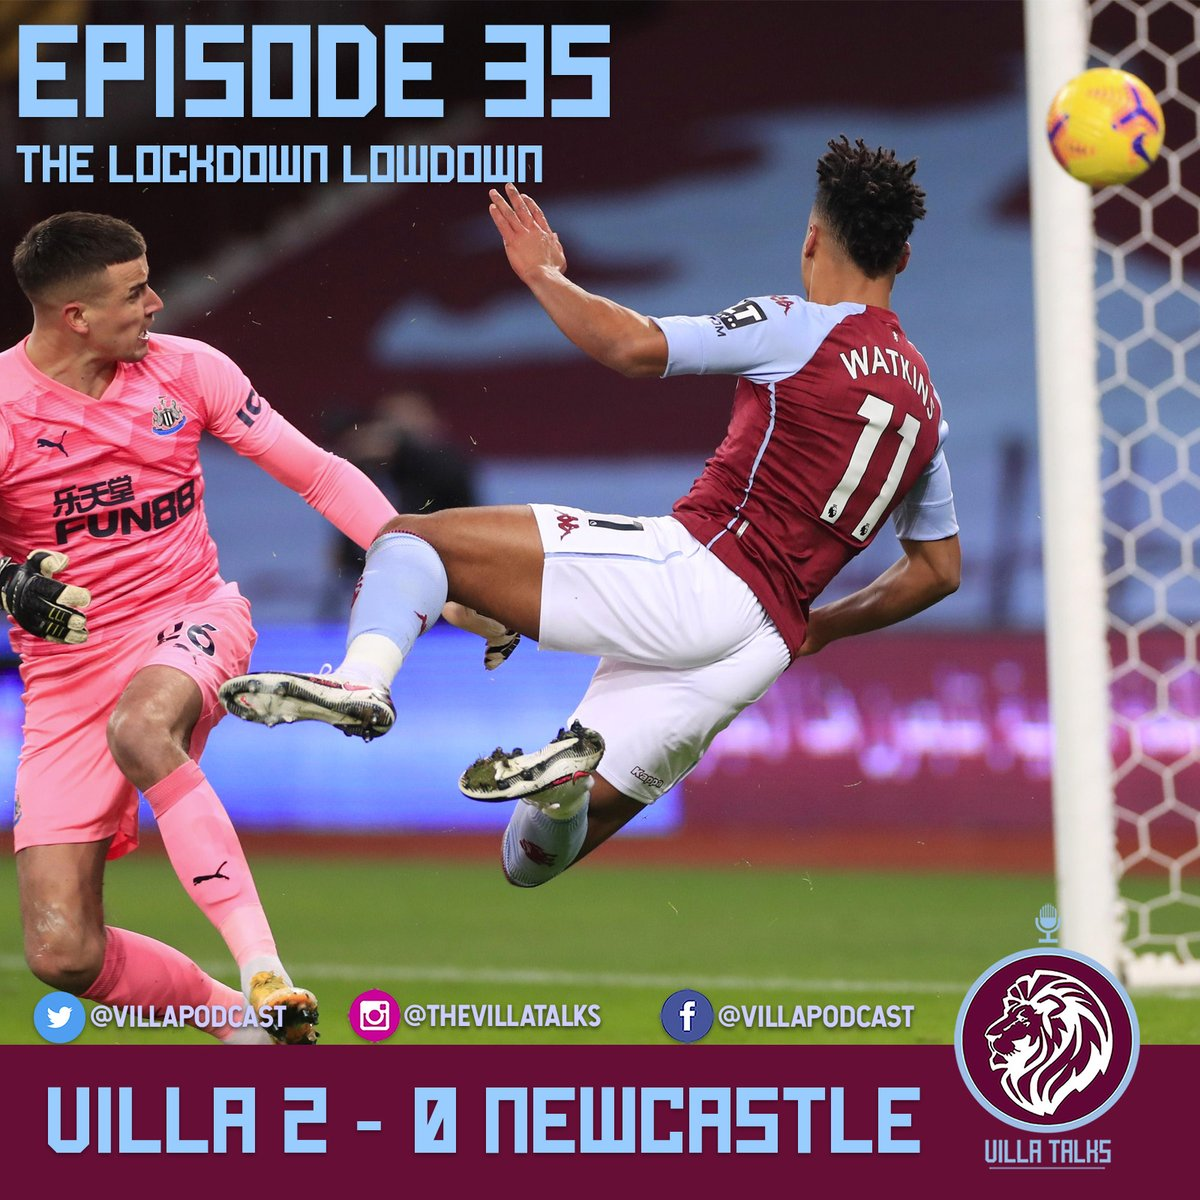 🎙️Episode 35🎙️ w/ @ACanning10 @JUGSYAVFC @jakemont   ✅2nd Gear Aston Villa on another planet to #NUFC ✅Traore's footballing brain ✅Nakamba 10/10 ✅#TargettTrajectory ✅Konsa's Consistency ✅Burnley preview  Please subscribe and RT  #AVFC